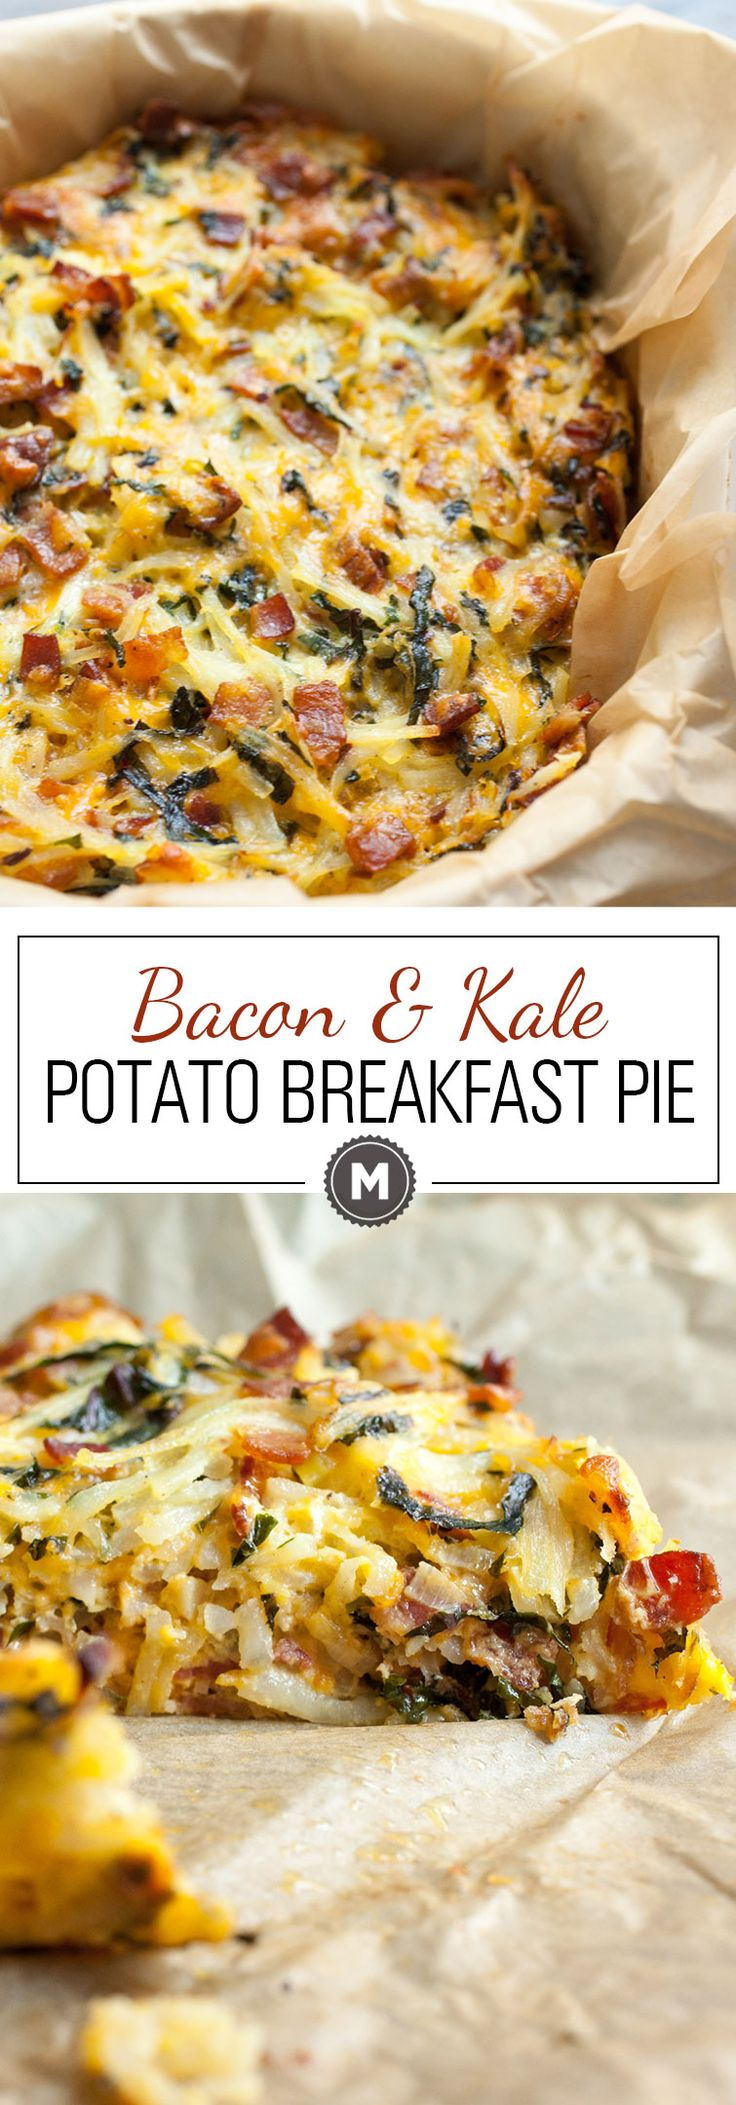 Potato Breakfast Pie with Bacon and Kale: An all-in one Brunch masterpiece, this pie is everything you want in a breakfast dish. Shredded potatoes, bacon, veggies, and just enough cheese and egg to hold it together. Make it, eat it, freeze any leftovers! | macheesmo.com